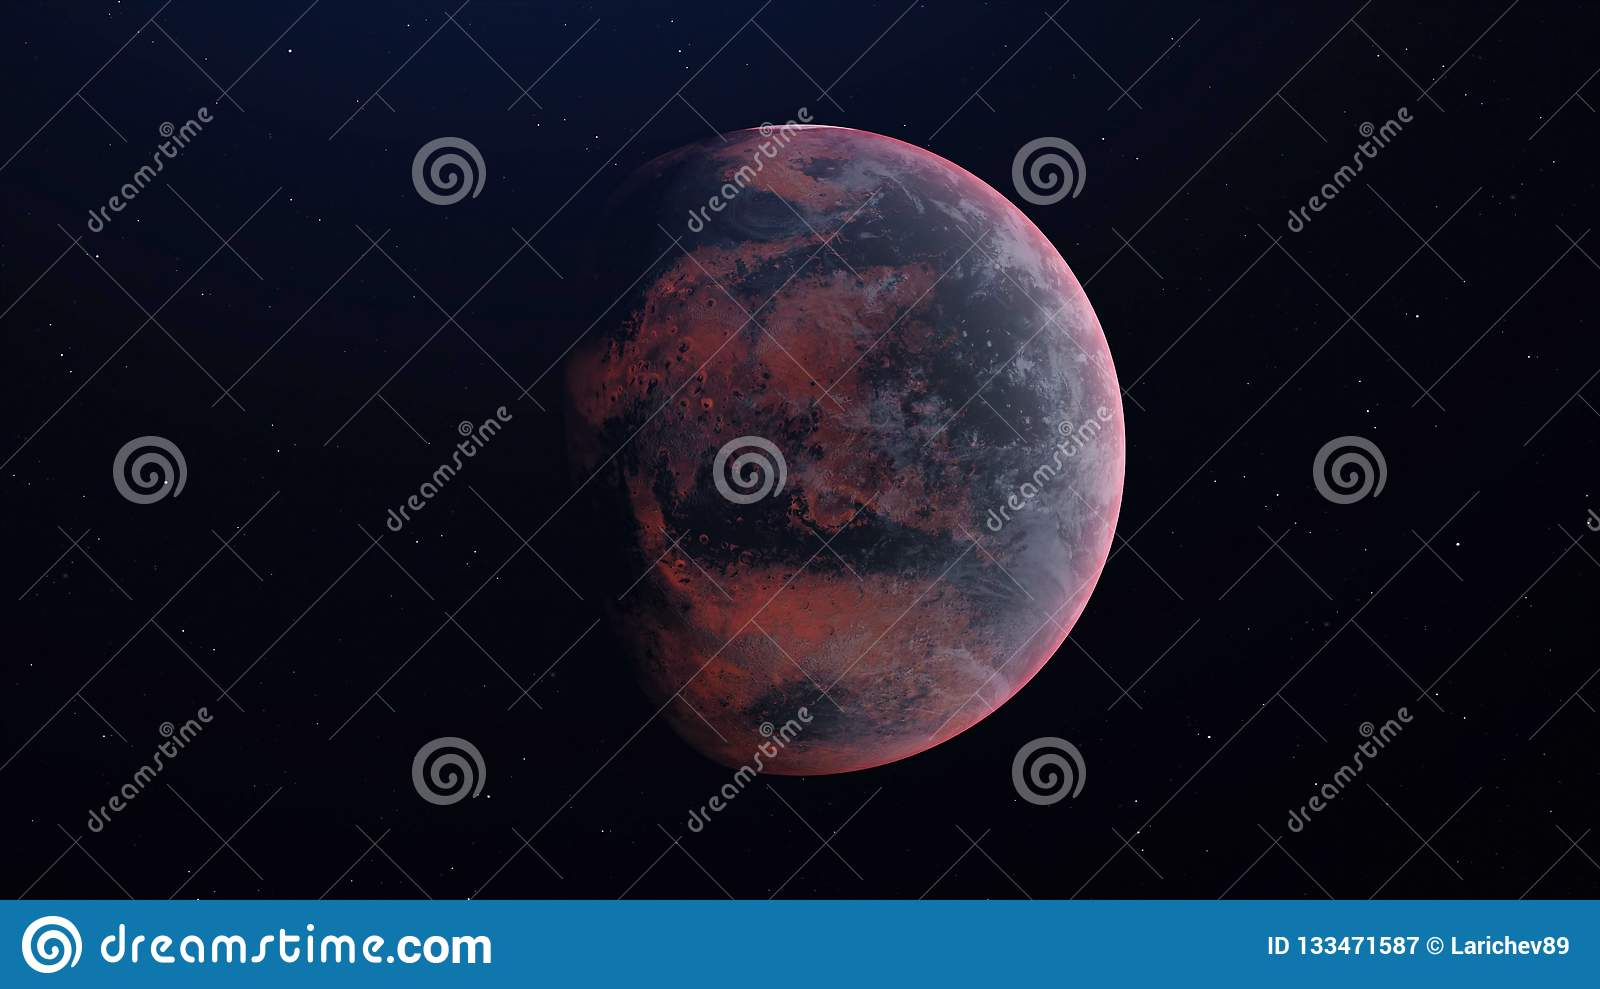 Alien Planet in the outer space - 3D Rendered